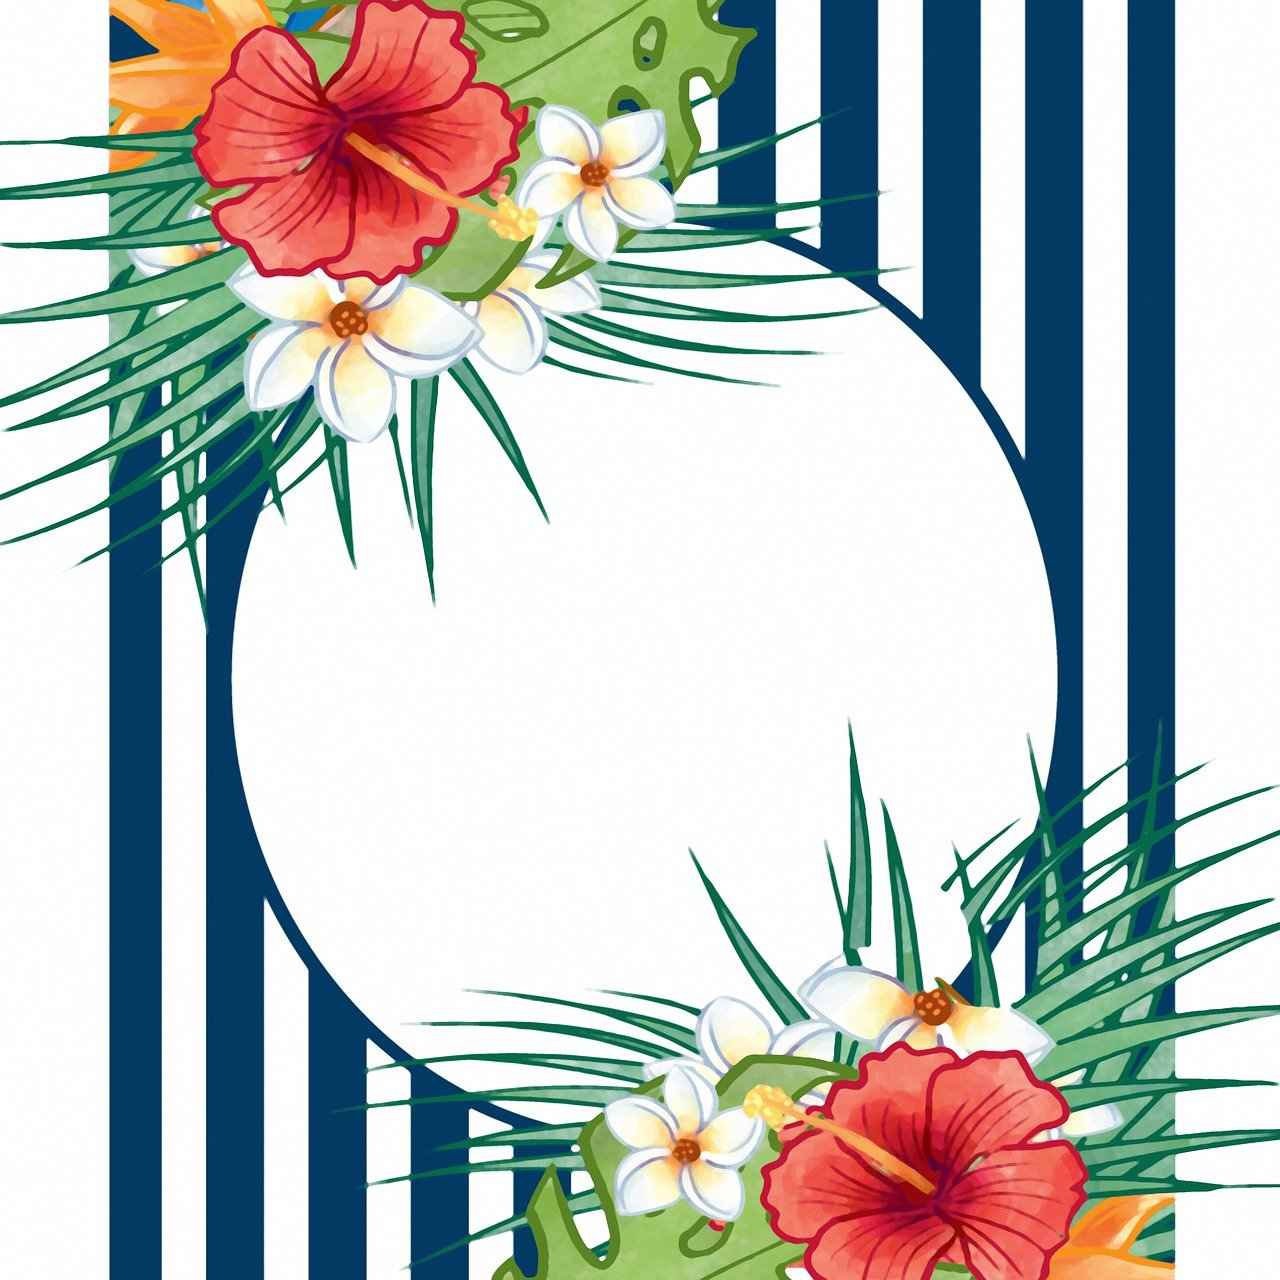 Tropical Floral Background Flower Free Image On Pixabay